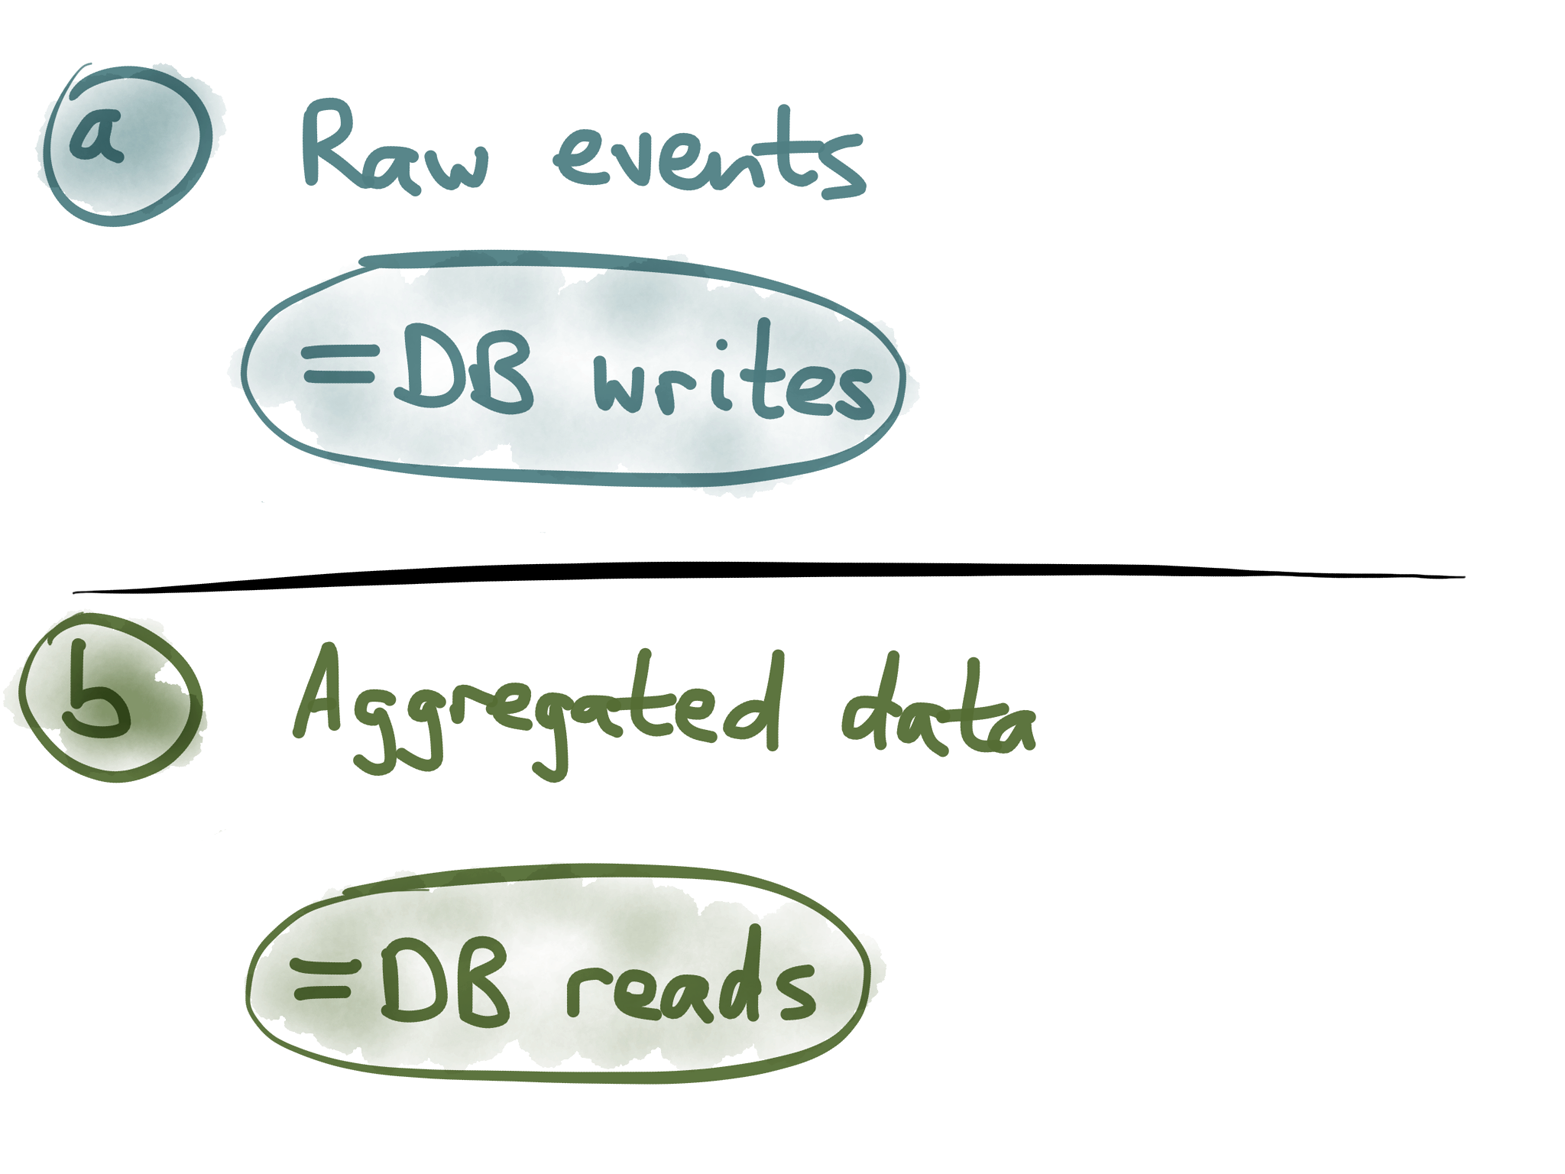 Events are optimized for writes; aggregated values are optimized for reads.